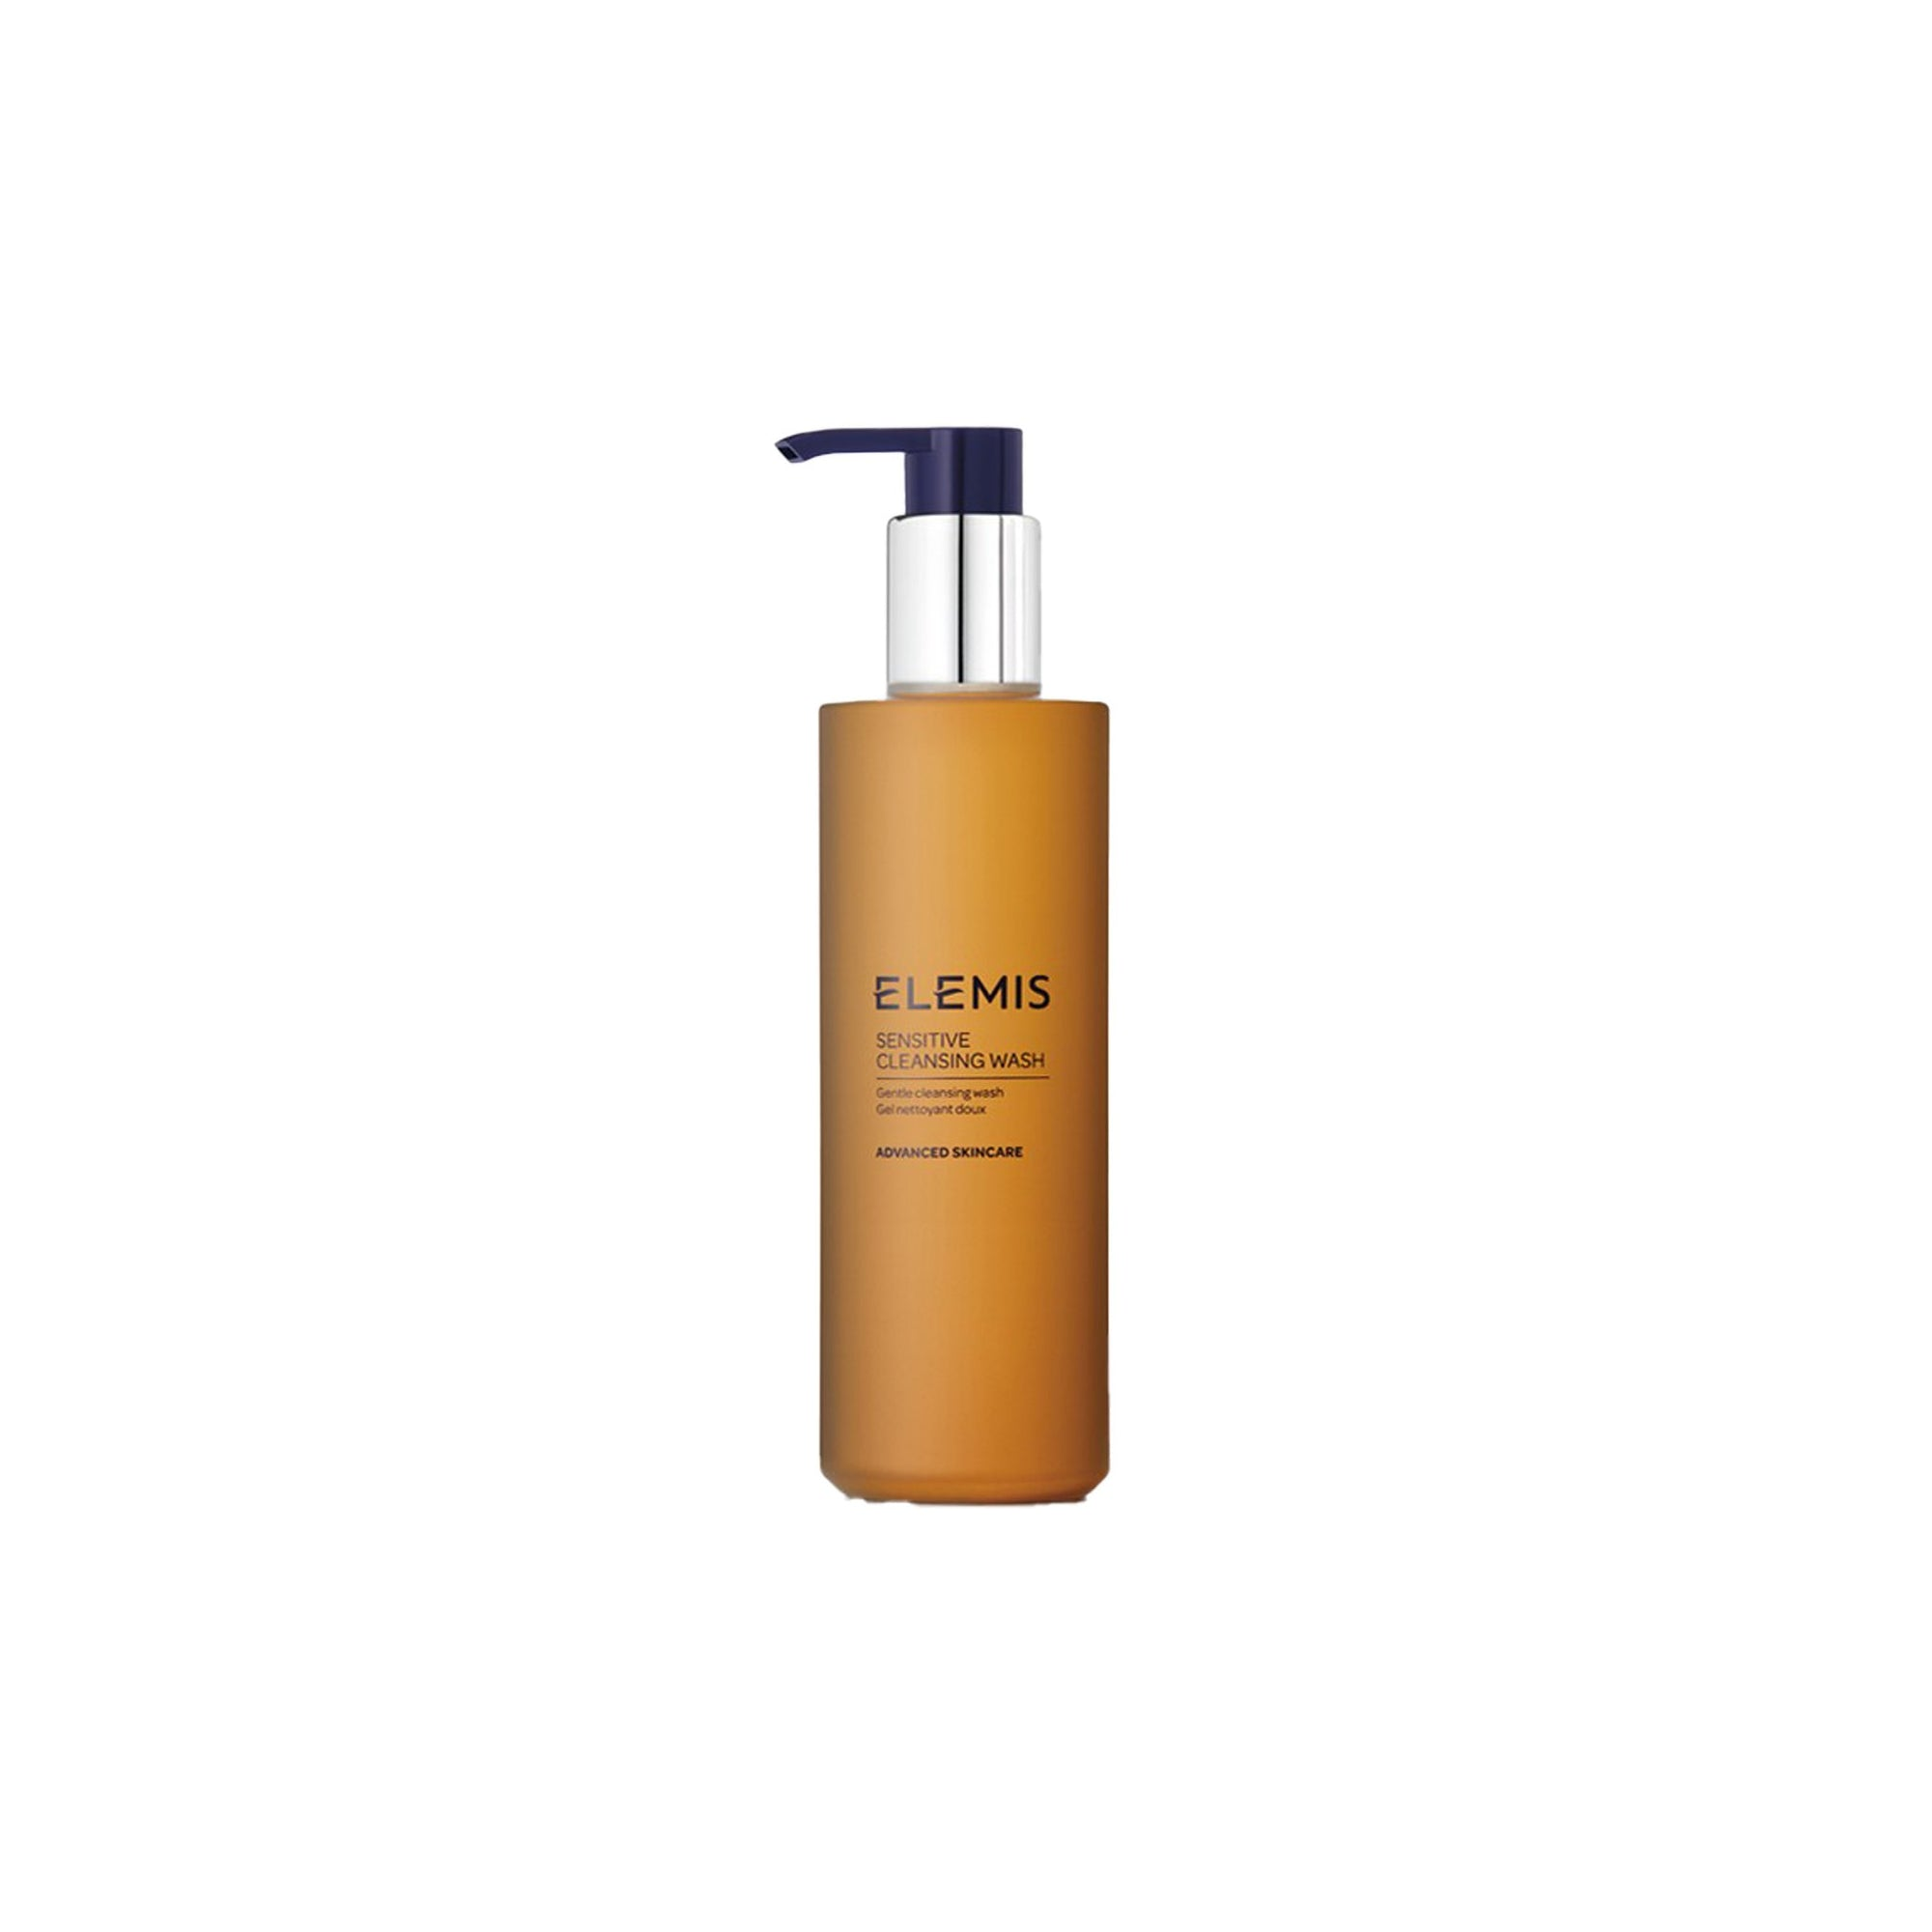 Elemis Sharp Shower Body Wash 300ml